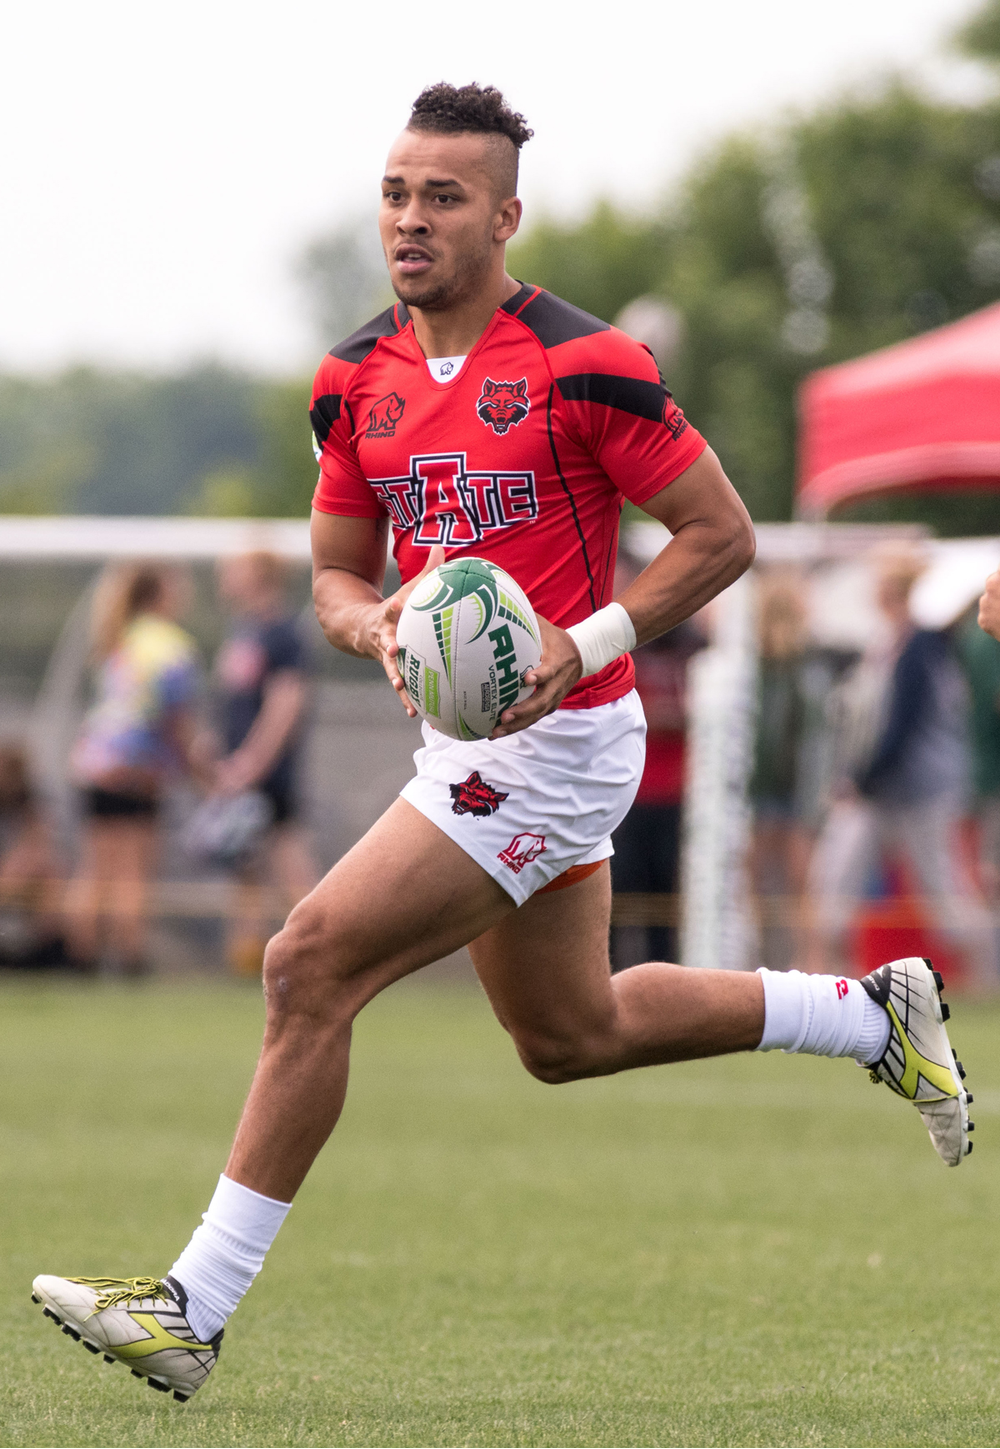 A-State Rugby Drops Close Road Game to Lindenwood